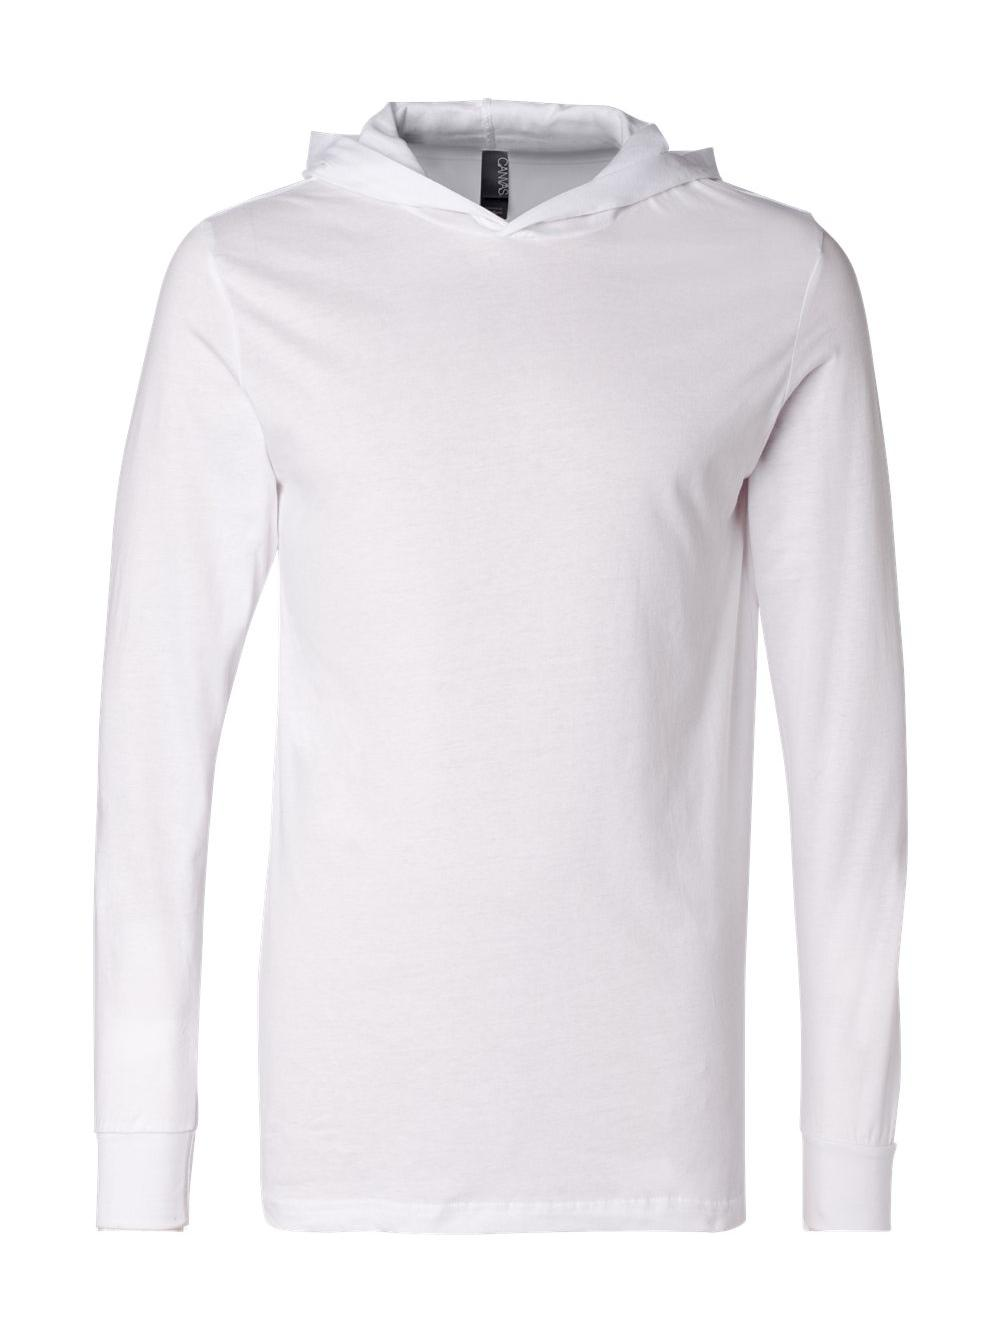 Bella-Canvas-Unisex-Long-Sleeve-Jersey-Hooded-Tee-3512 thumbnail 30